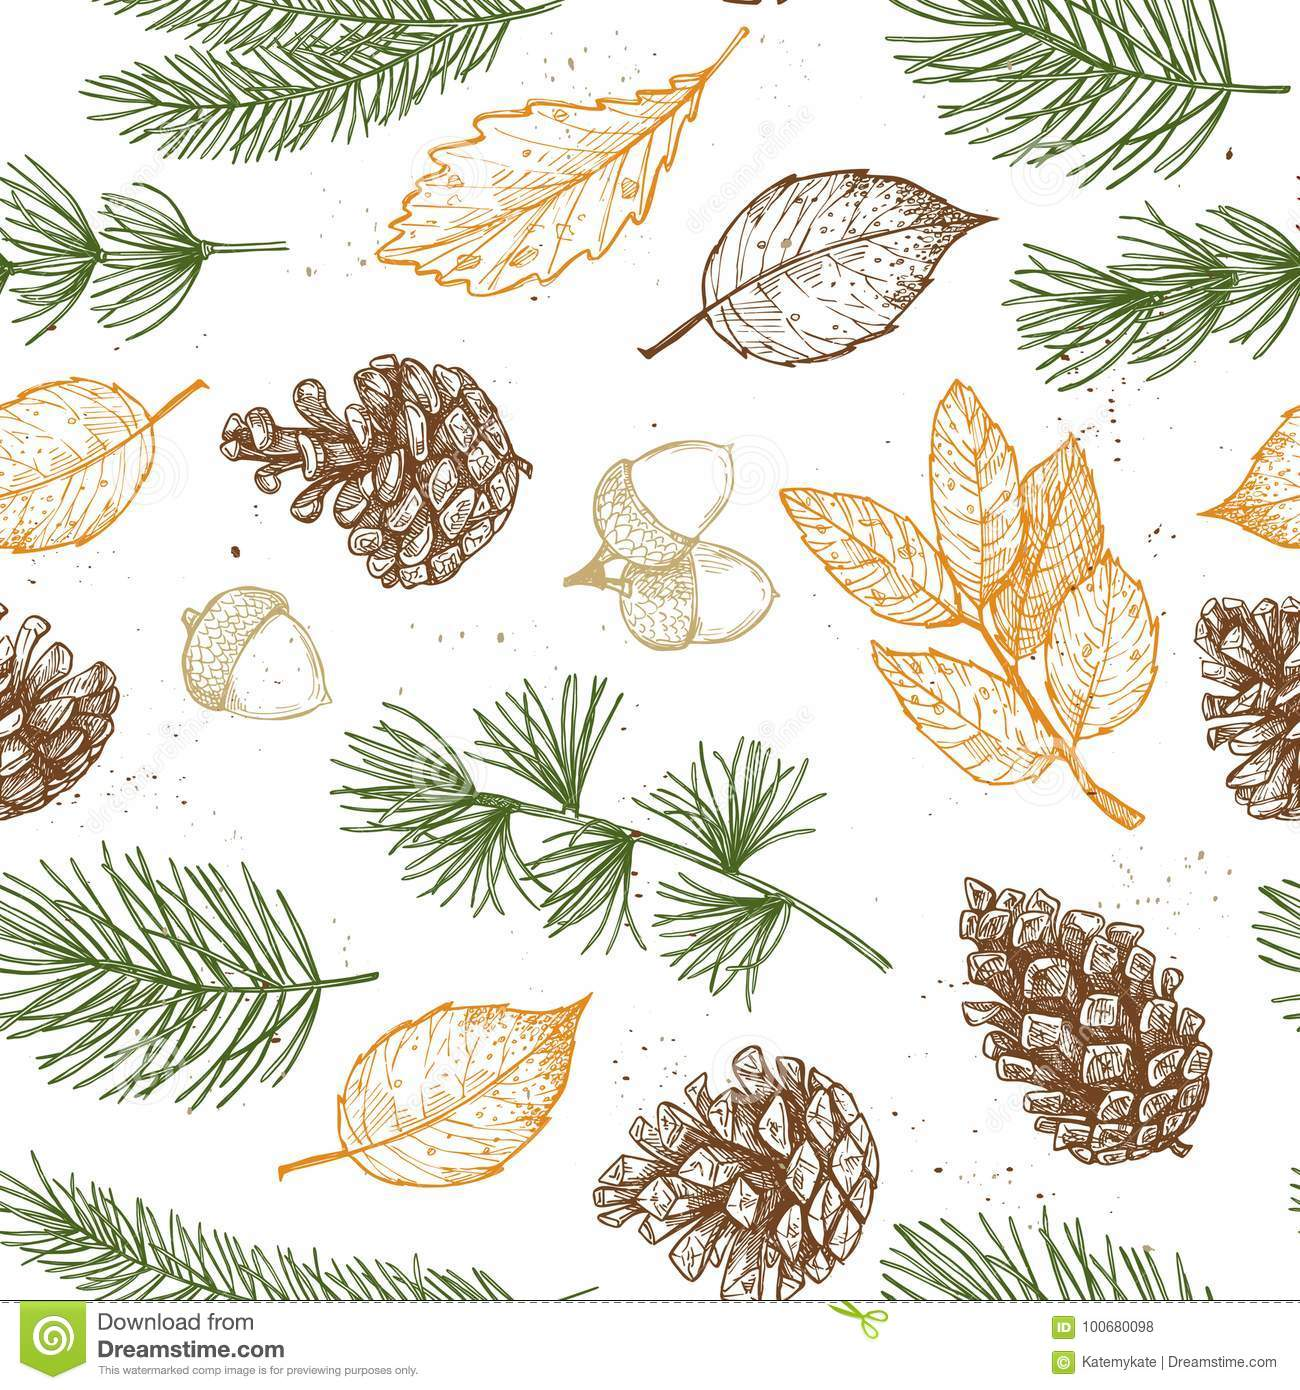 Seamless pattern. Hand drawn vector illustrations - Forest Autumn collection. Spruce branches, acorns, pine cones, fall leaves. D